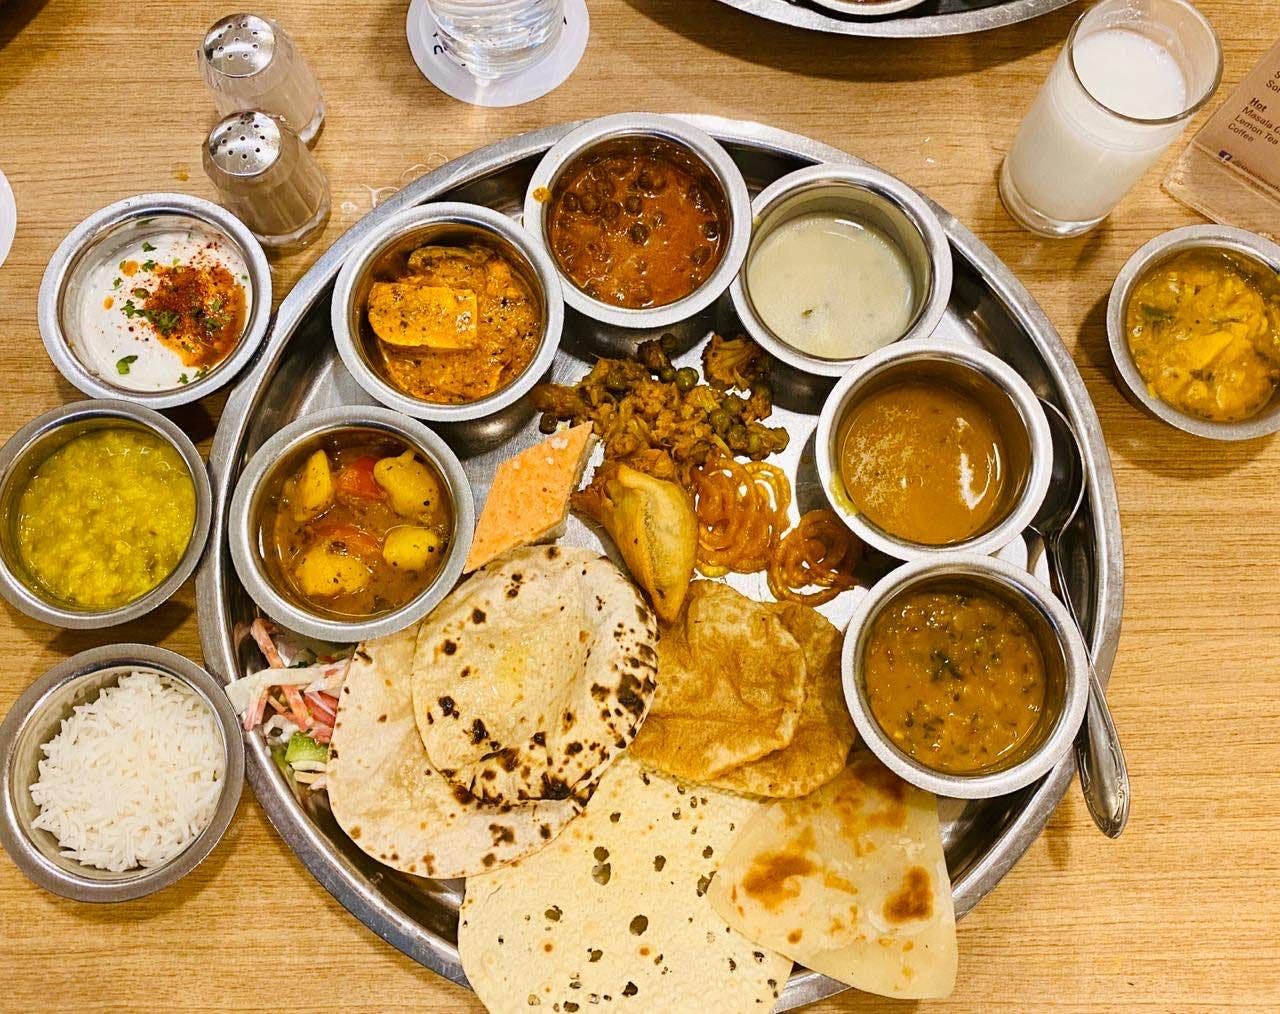 Check Out This Place In Juhu For Their Special Gujrati Thali!